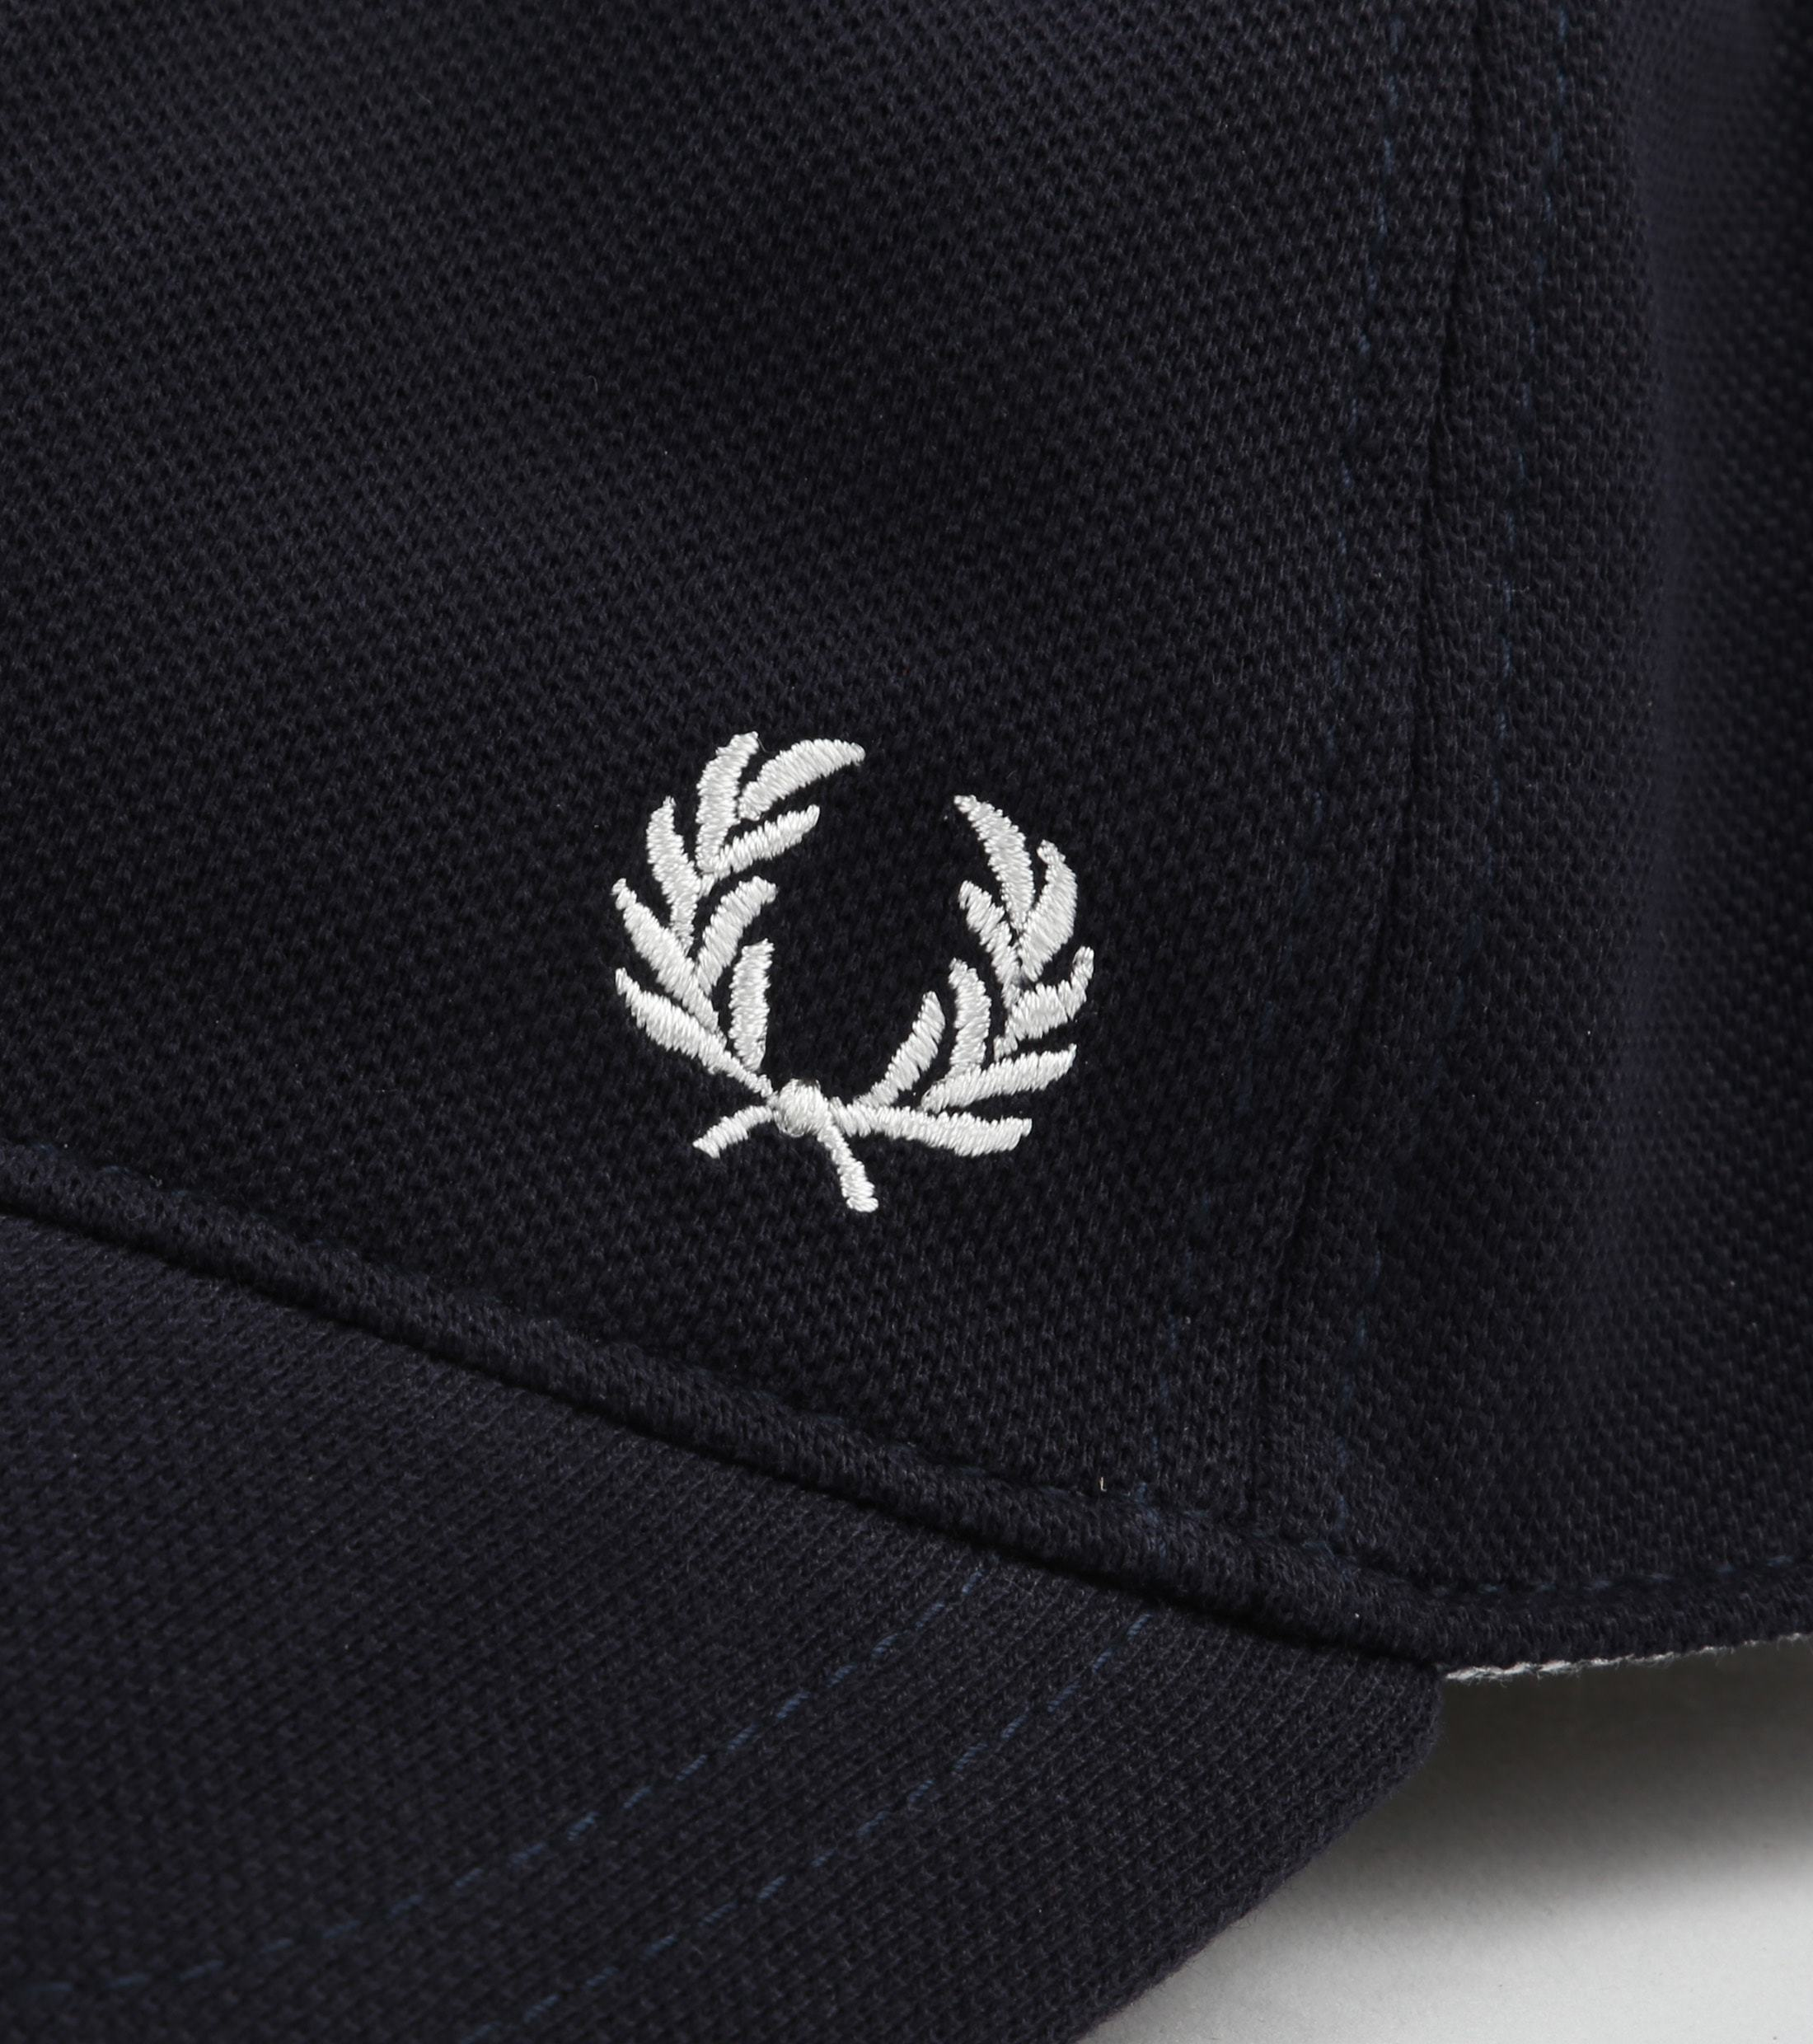 Fred Perry A27 Kappe Dunkelblau foto 1